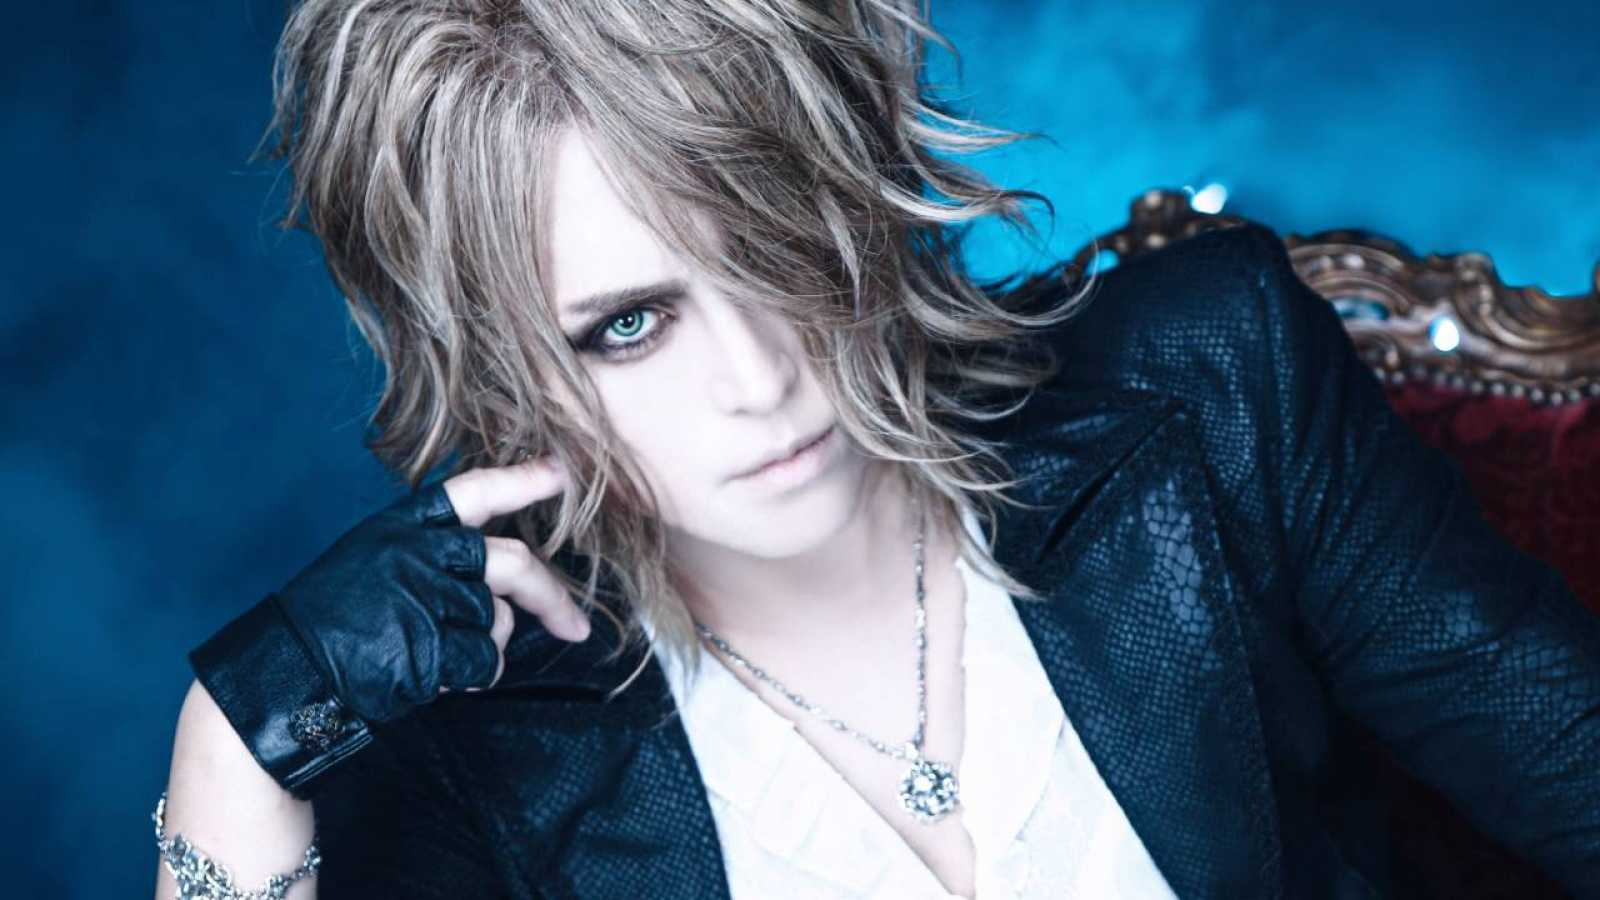 KAMIJO © CHATEAU AGENCY CO., Ltd. All rights reserved.